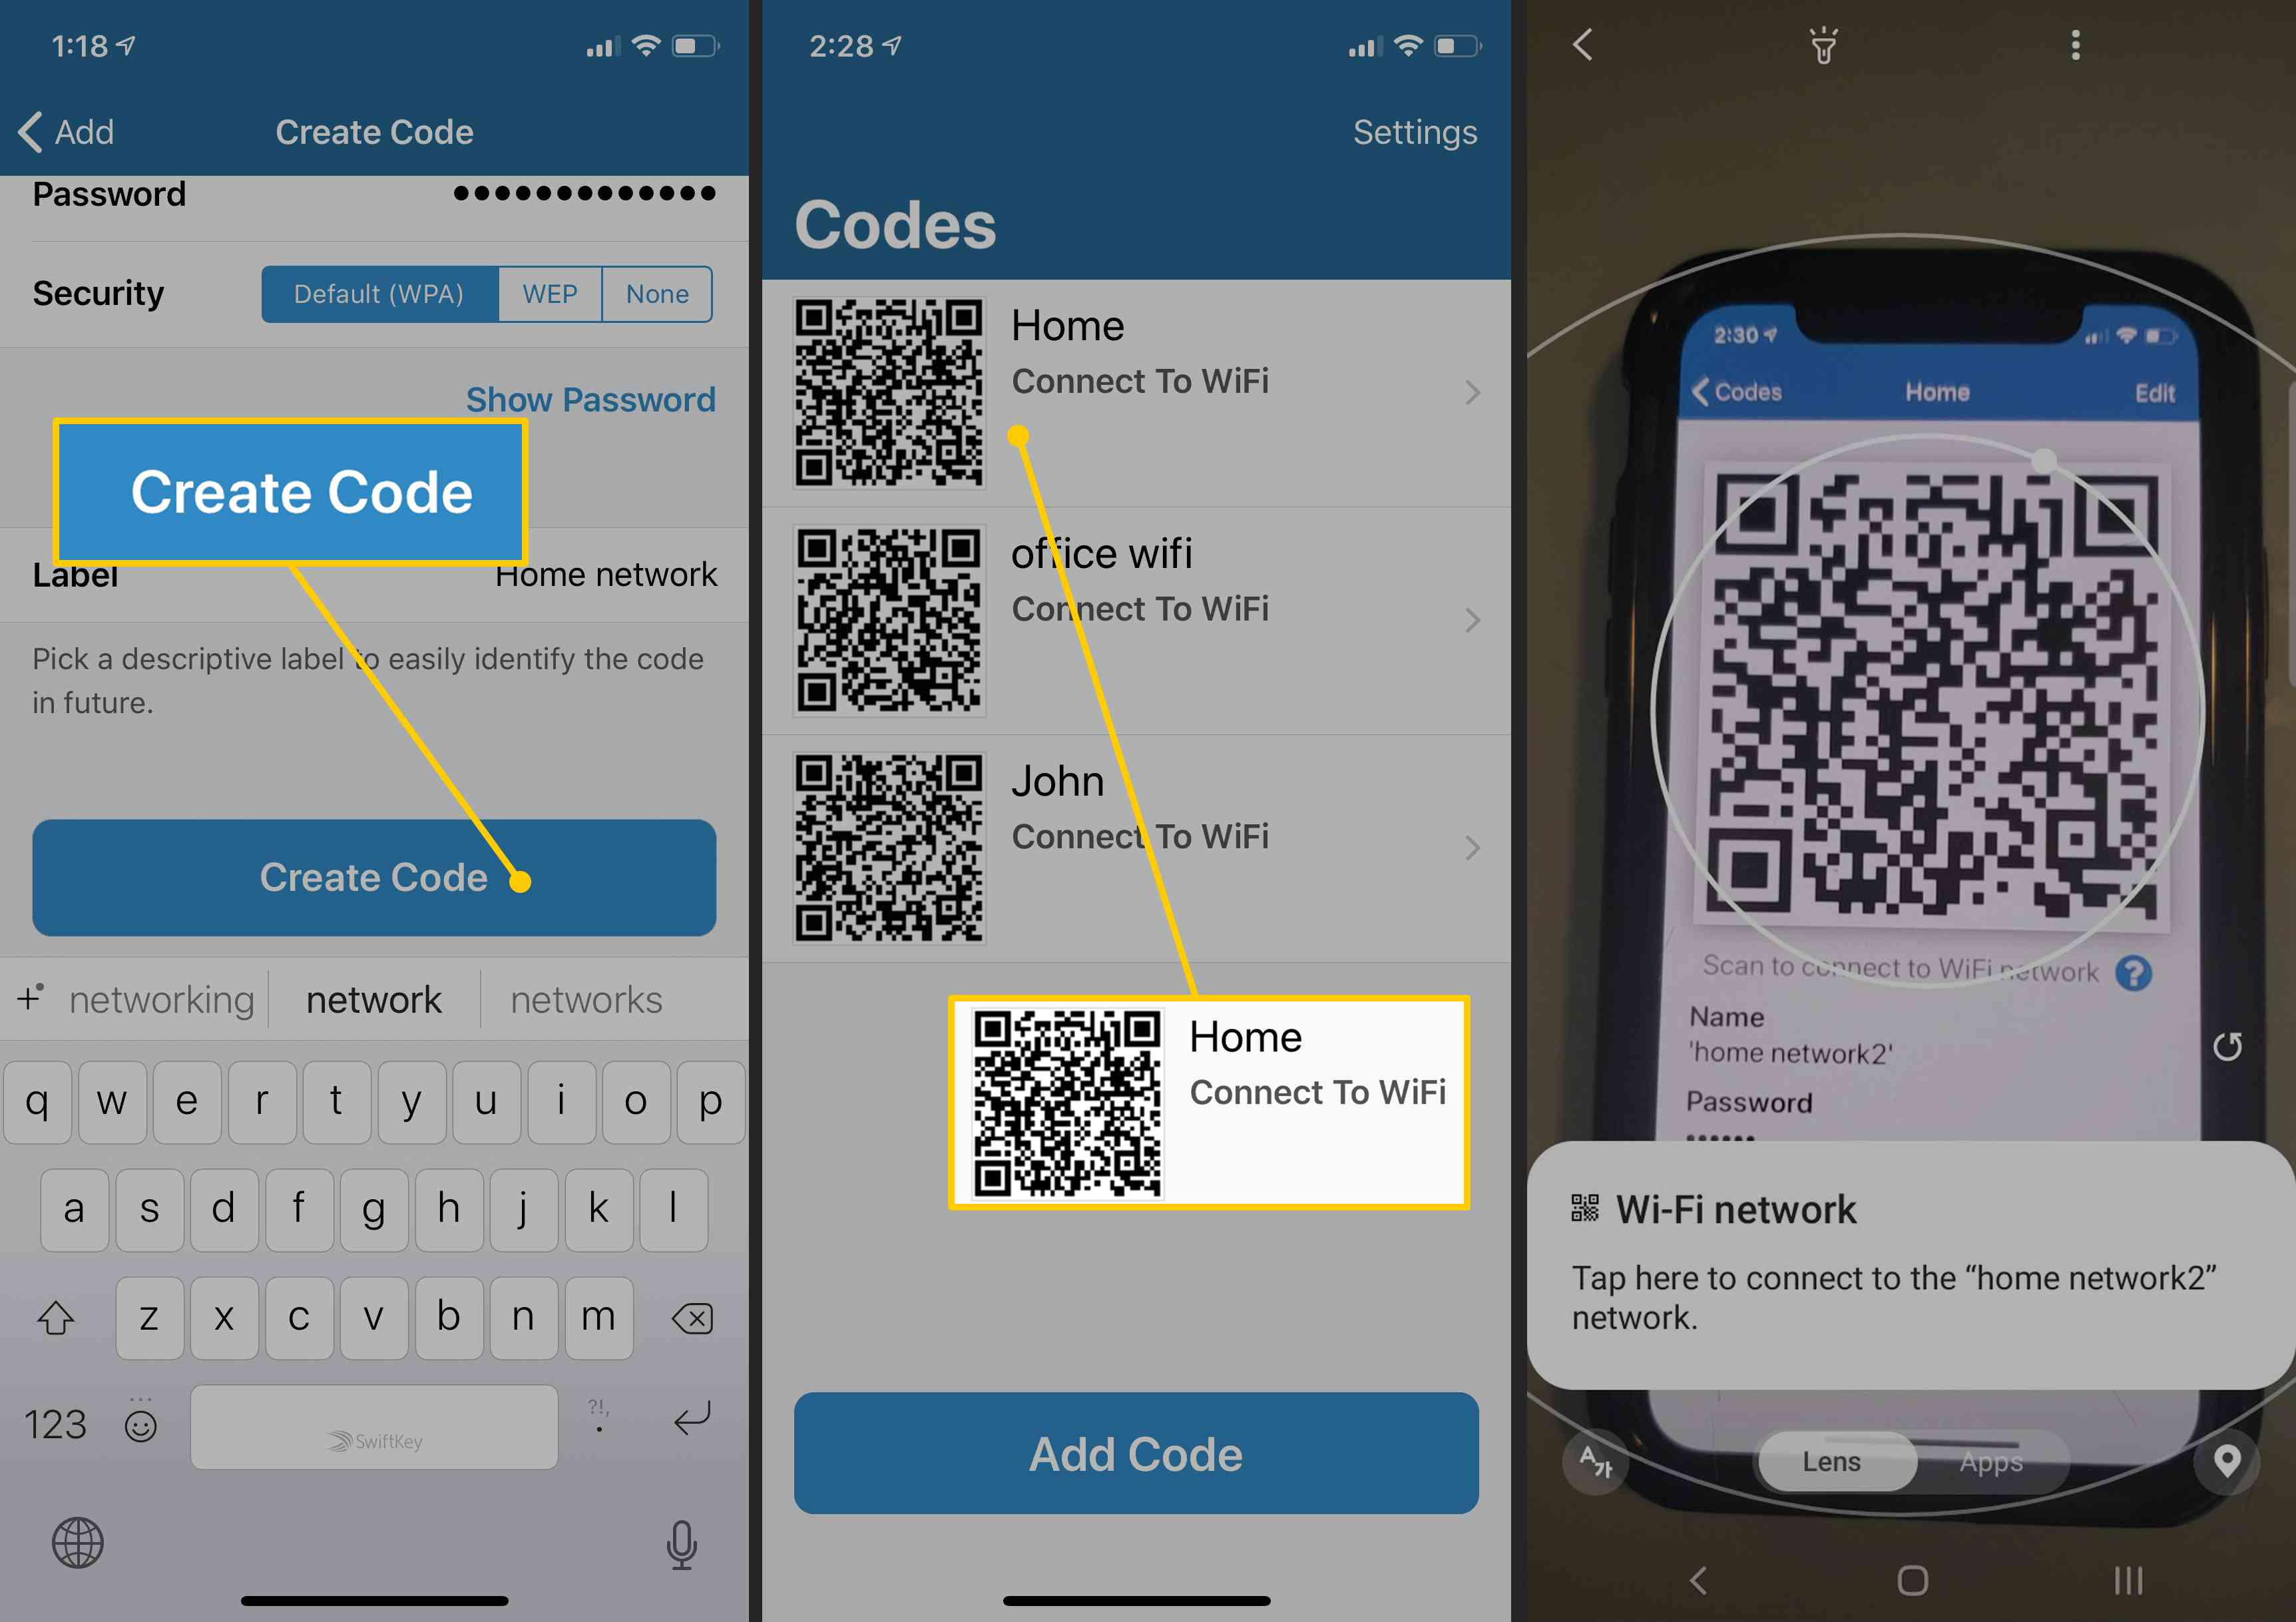 How To Share A Wi Fi Password From Iphone To Android